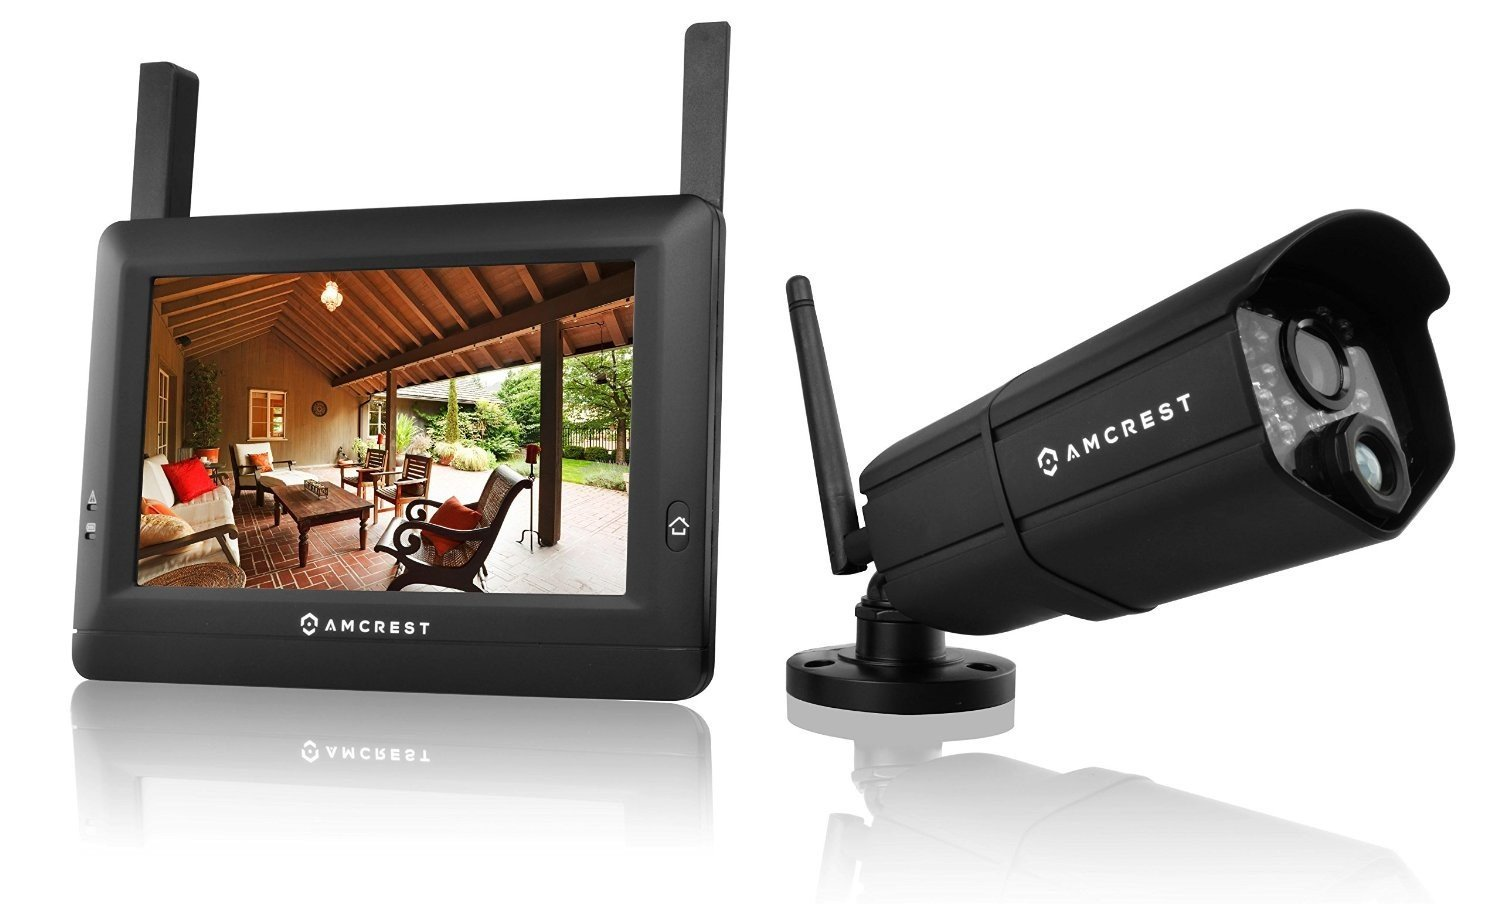 Amcrest WLD895US 720P 4CH 7-Inch Wireless Video Surveillance System